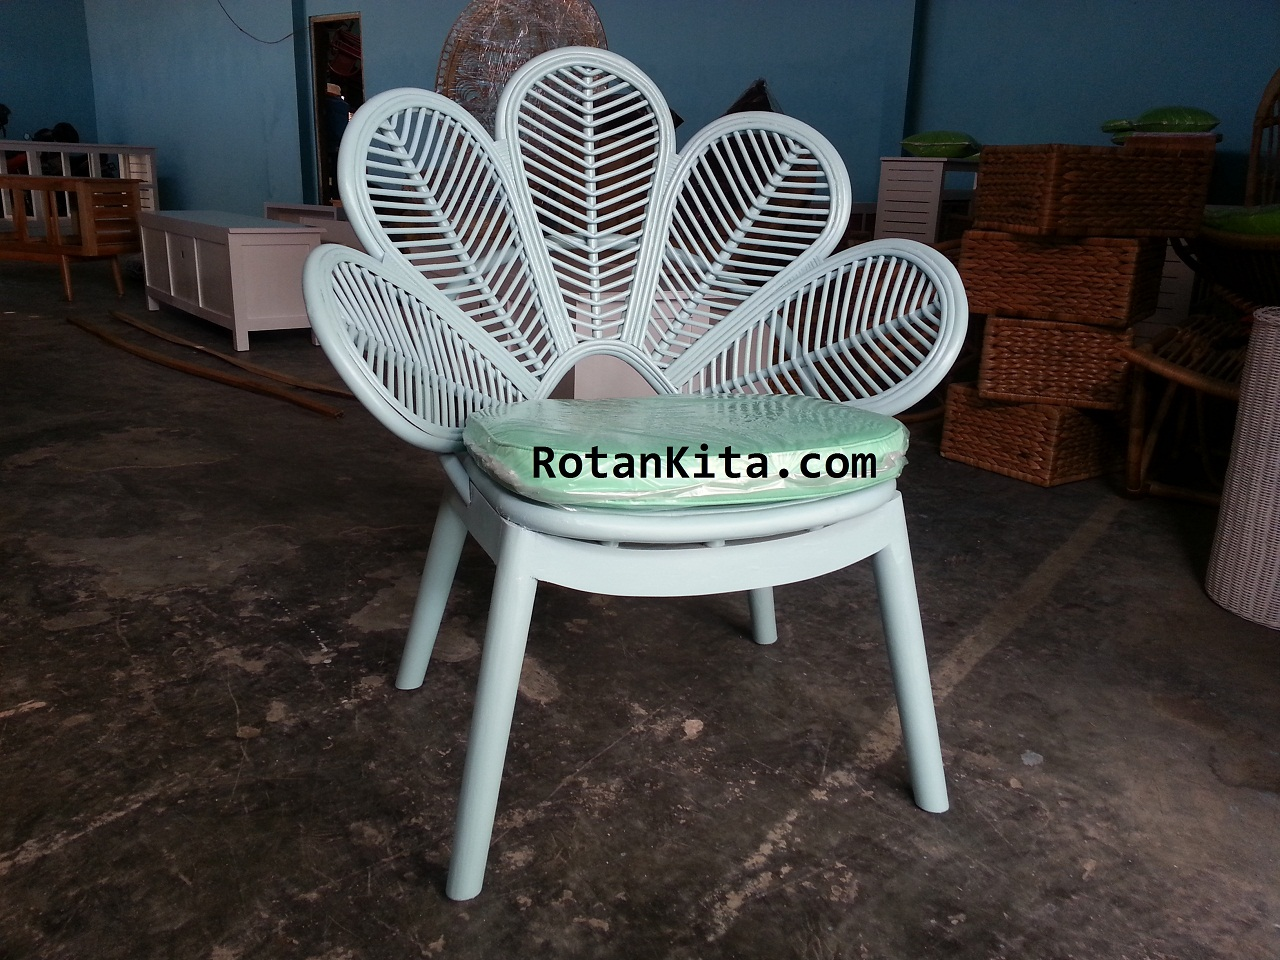 RTK27 4 C Flower Chair | Code: RTK27